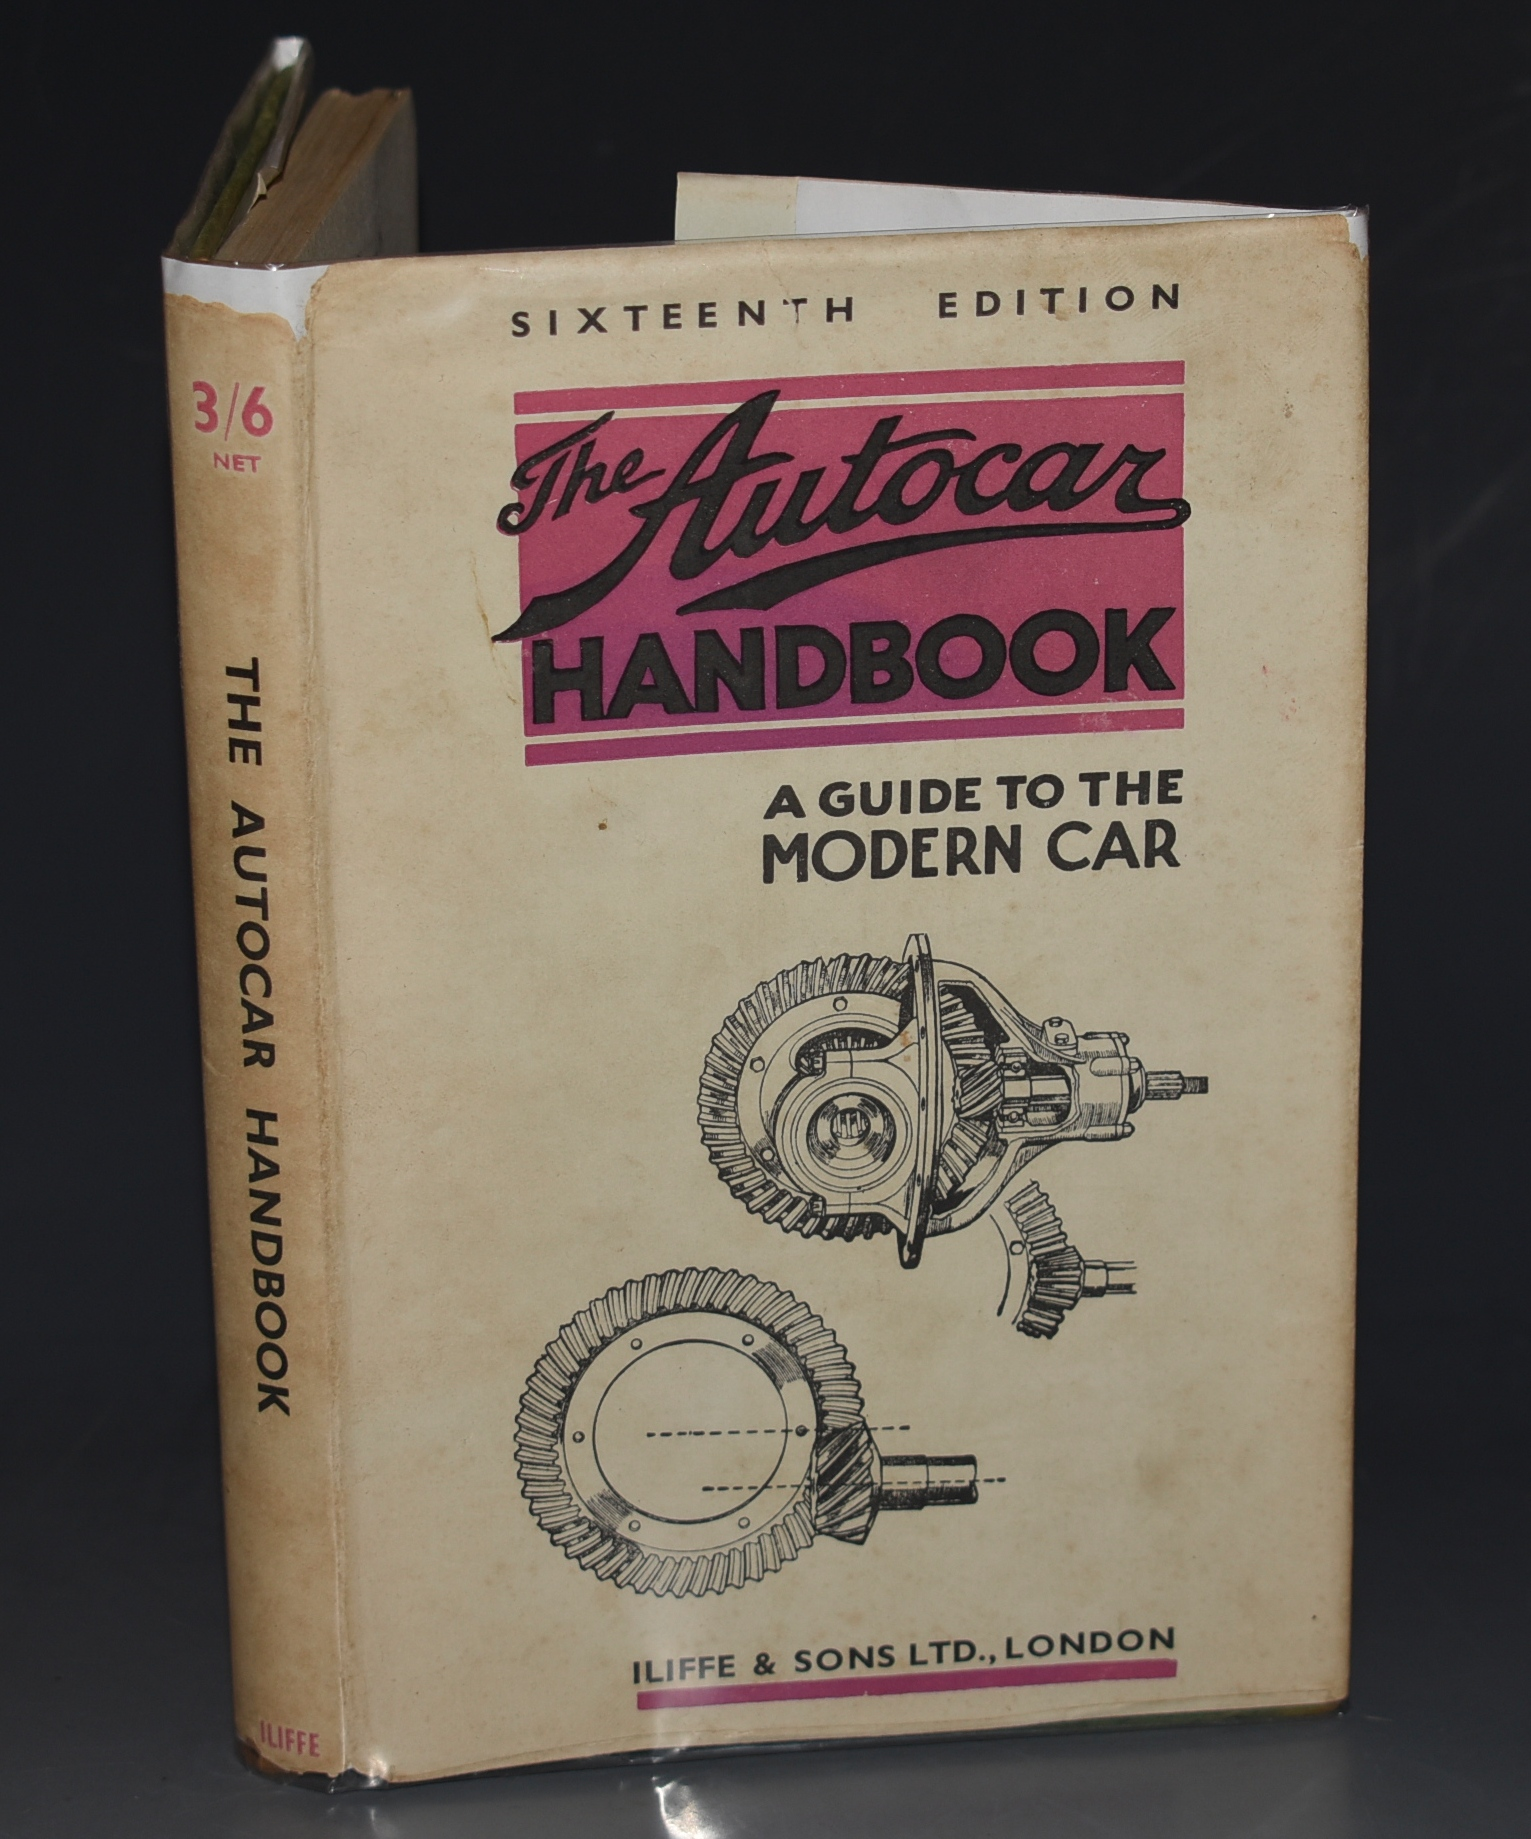 Image for The Autocar Handbook A Guide to the Modern Motor Car. Sixteenth Edition, Revised February 1942.